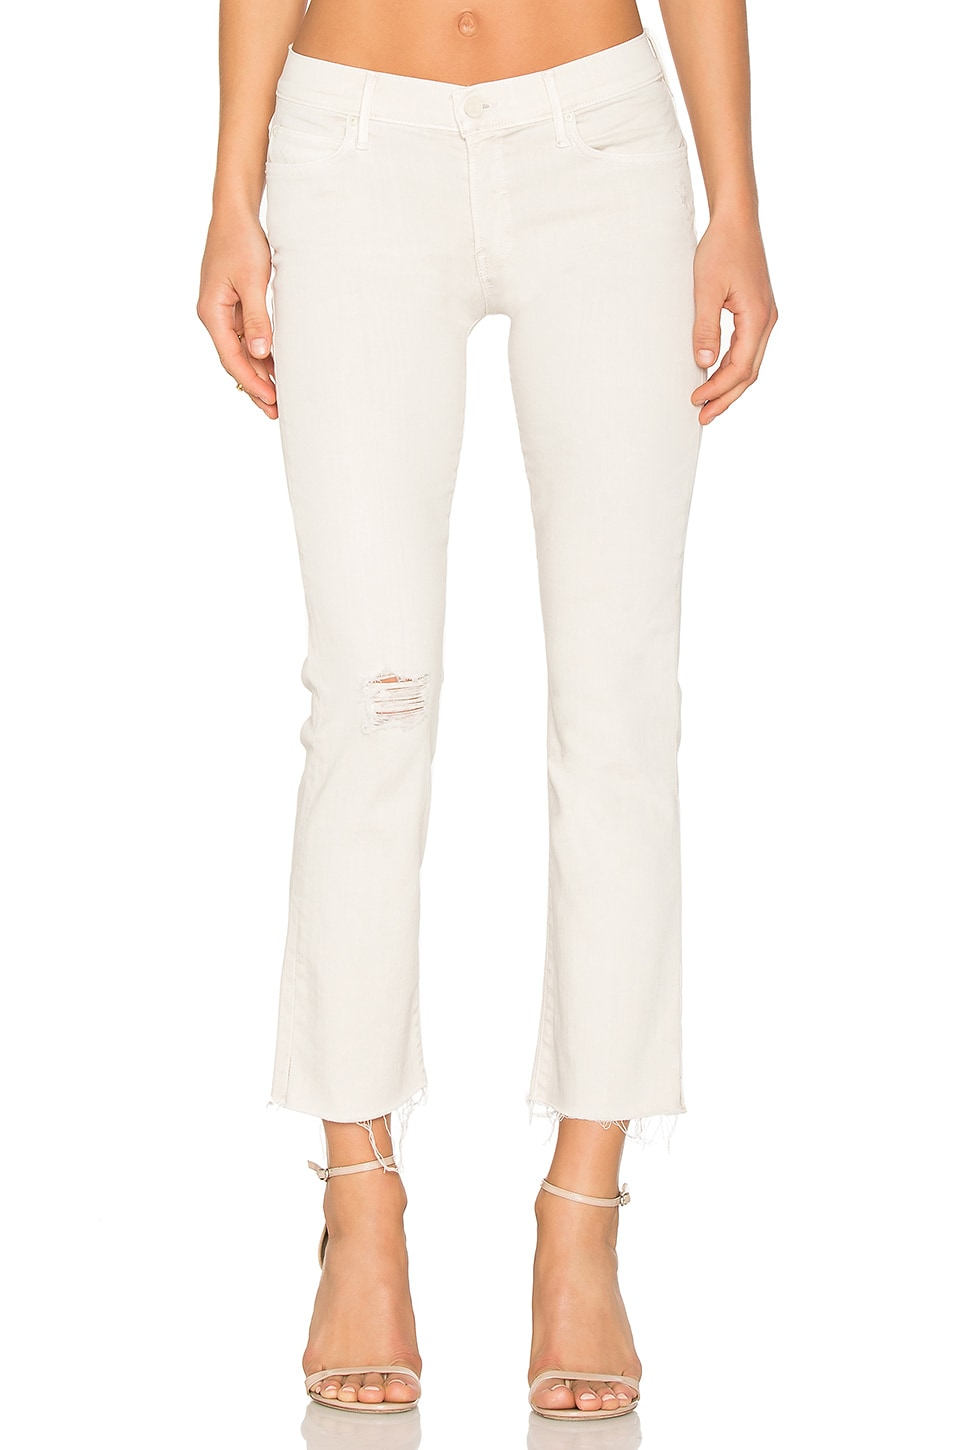 3baf70866b91 MOTHER The Rascal Ankle Snippet in Sexy Just Walked In Cool Ivory ...